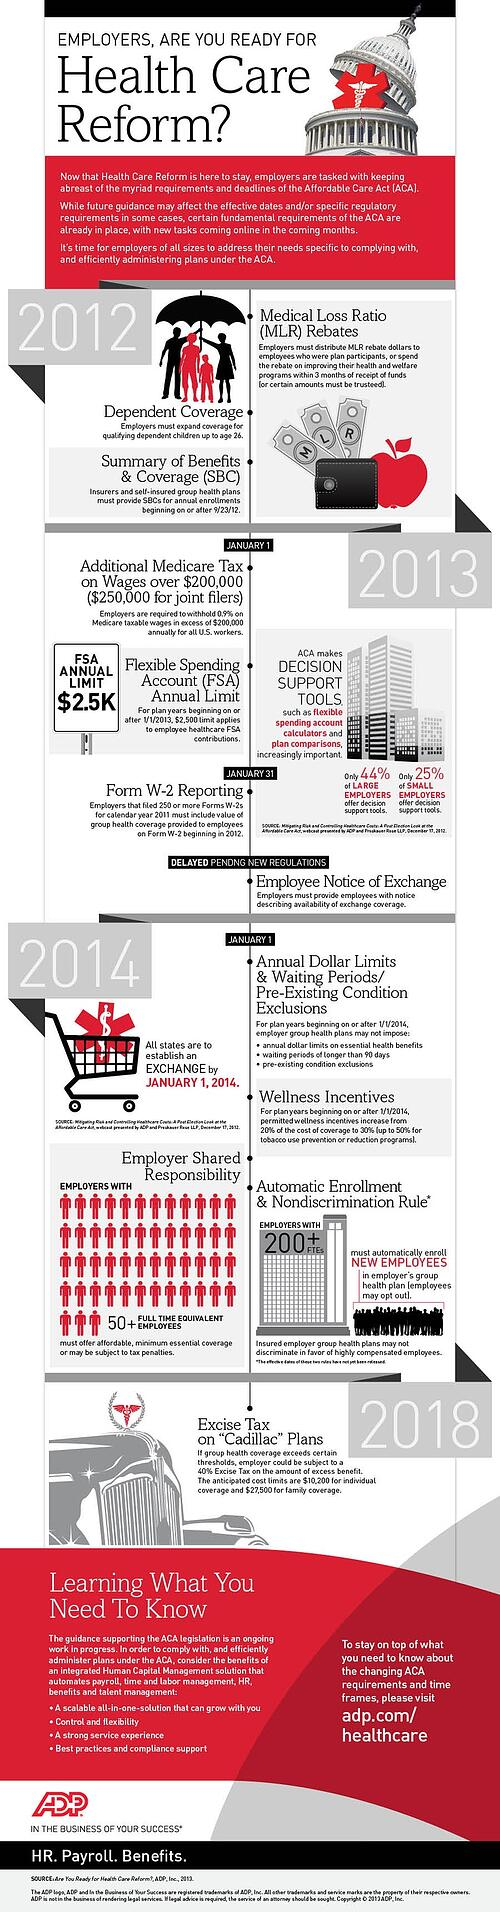 Healthcare Reform Infographic via ADP @ZaneBenefits